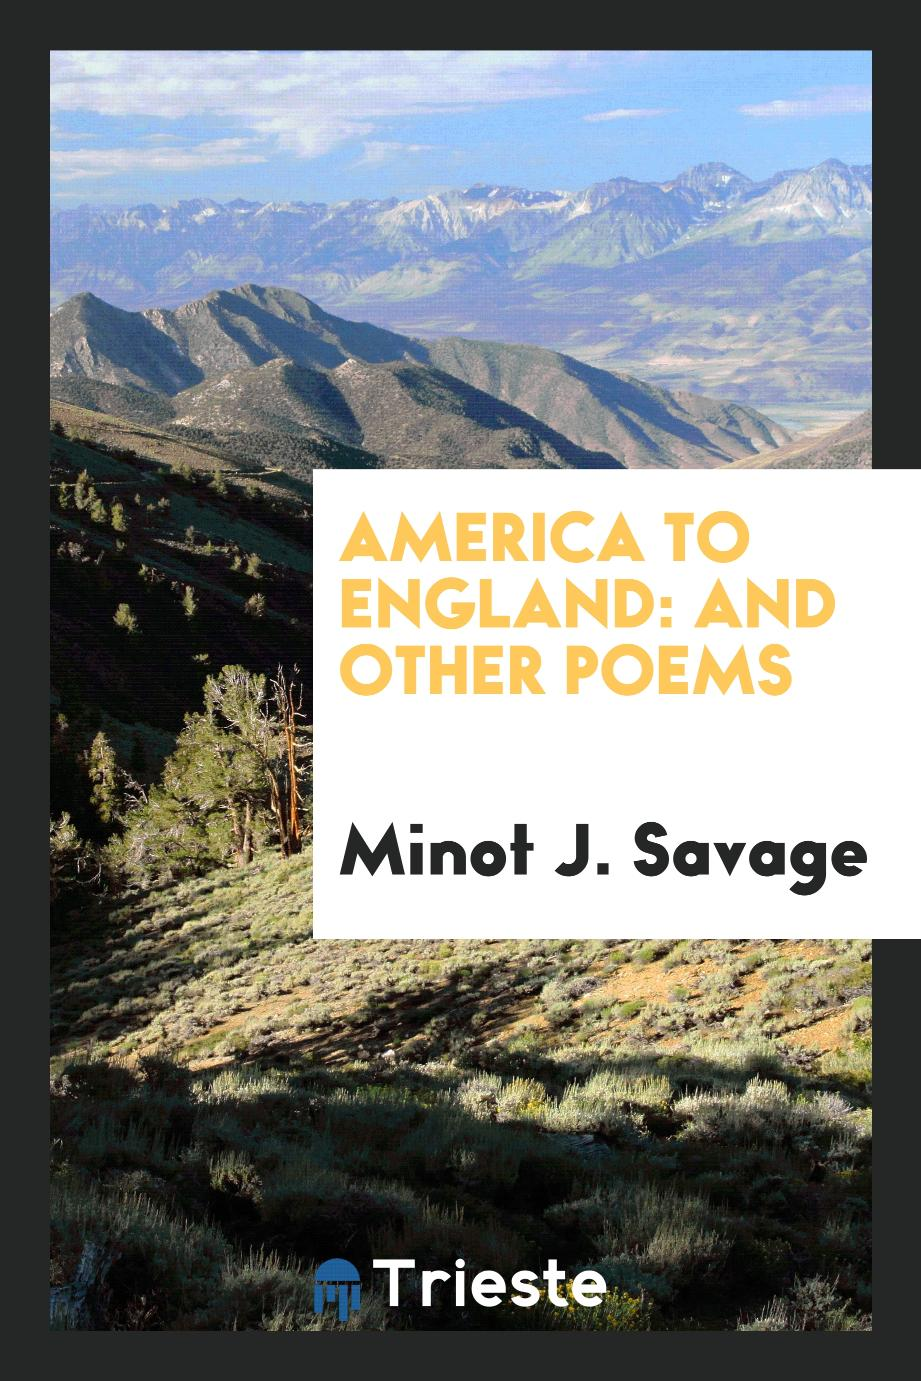 America to England: And Other Poems